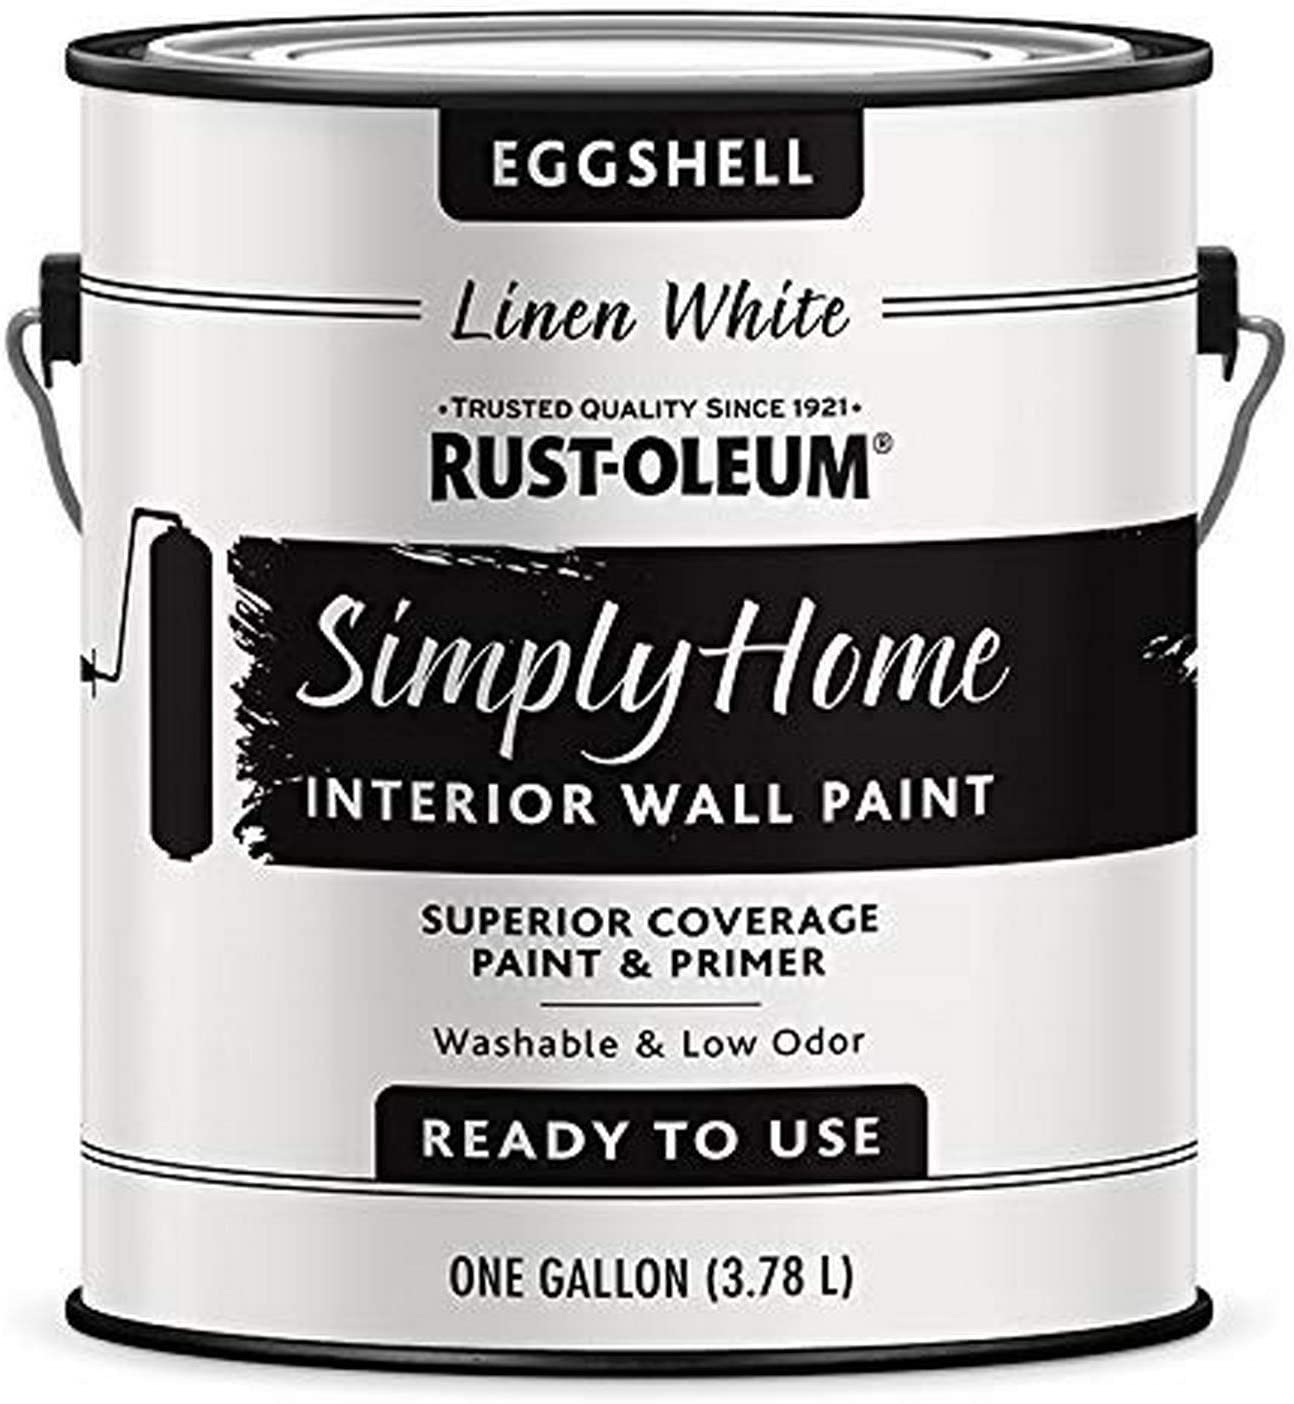 Rust-Oleum Simply Home Interior Wall Paint 343991 Simply Home Eggshell Interior Wall Paint, Linen White